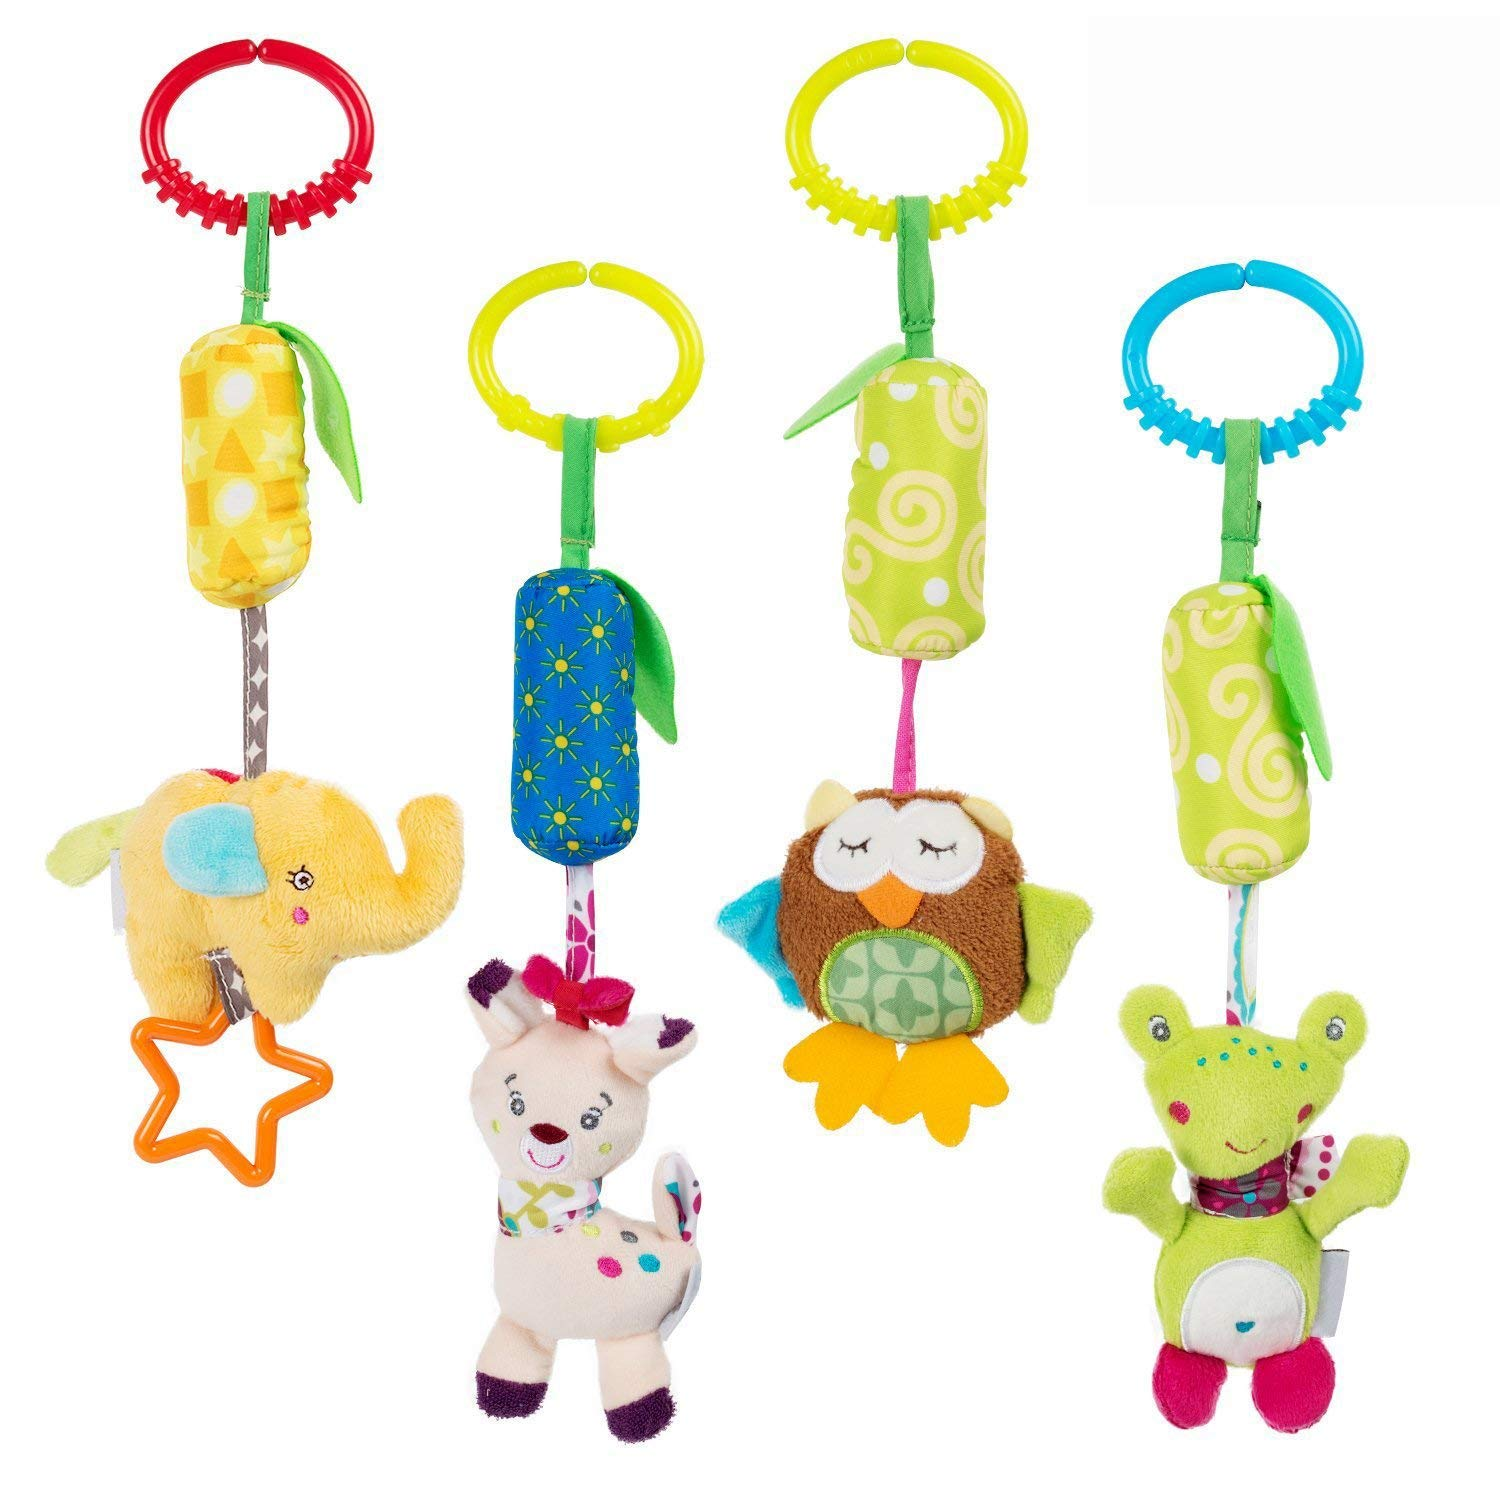 Daisy 4 Packs Infant Baby Plush Adorable Animal Car Seat Hanging Rattle Toy Kids Stroller Crib Pram Ornament Bells Puppet with Wind Chime and Squeak Daisy' s dream